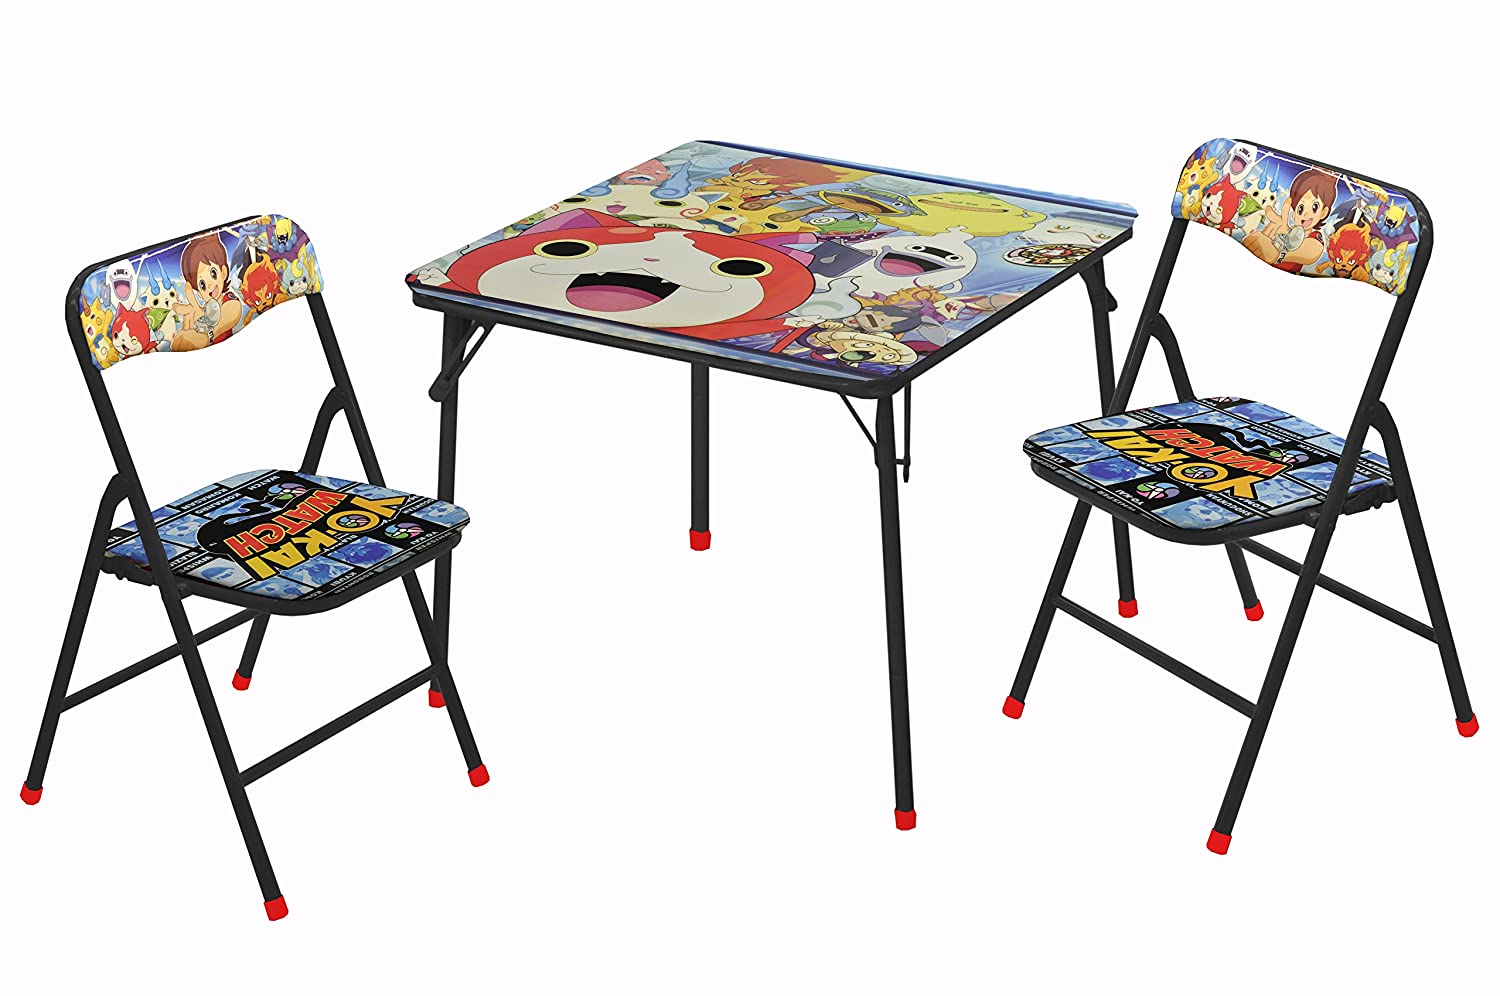 My Little Pony Table & Chair Set Idea Nuova - LA NK500308